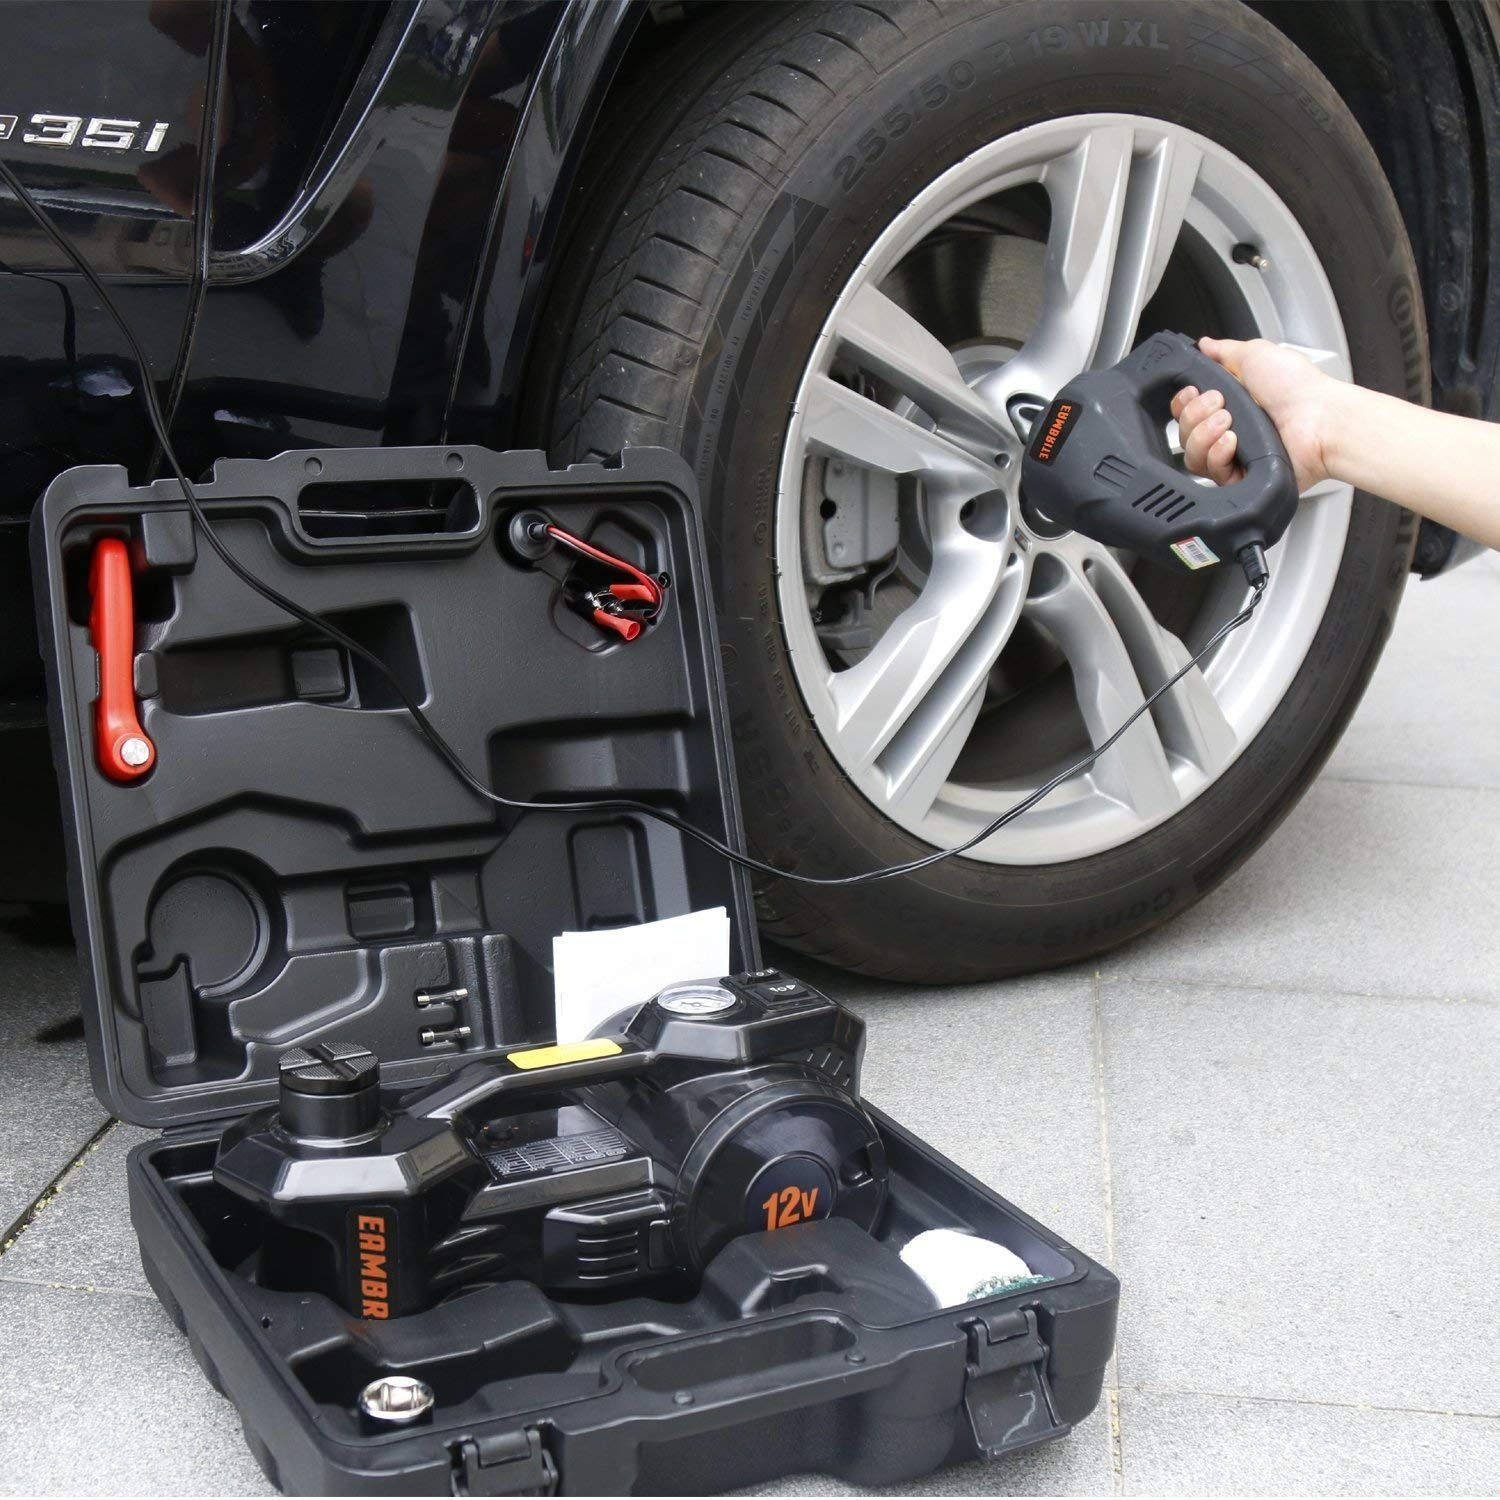 147 12v Dc 3t 3 In 1 Auto Car Electric Hydraulic Floor Jack Lift And Impact Wrench Car Jacks Car Jack Car Hydraulic